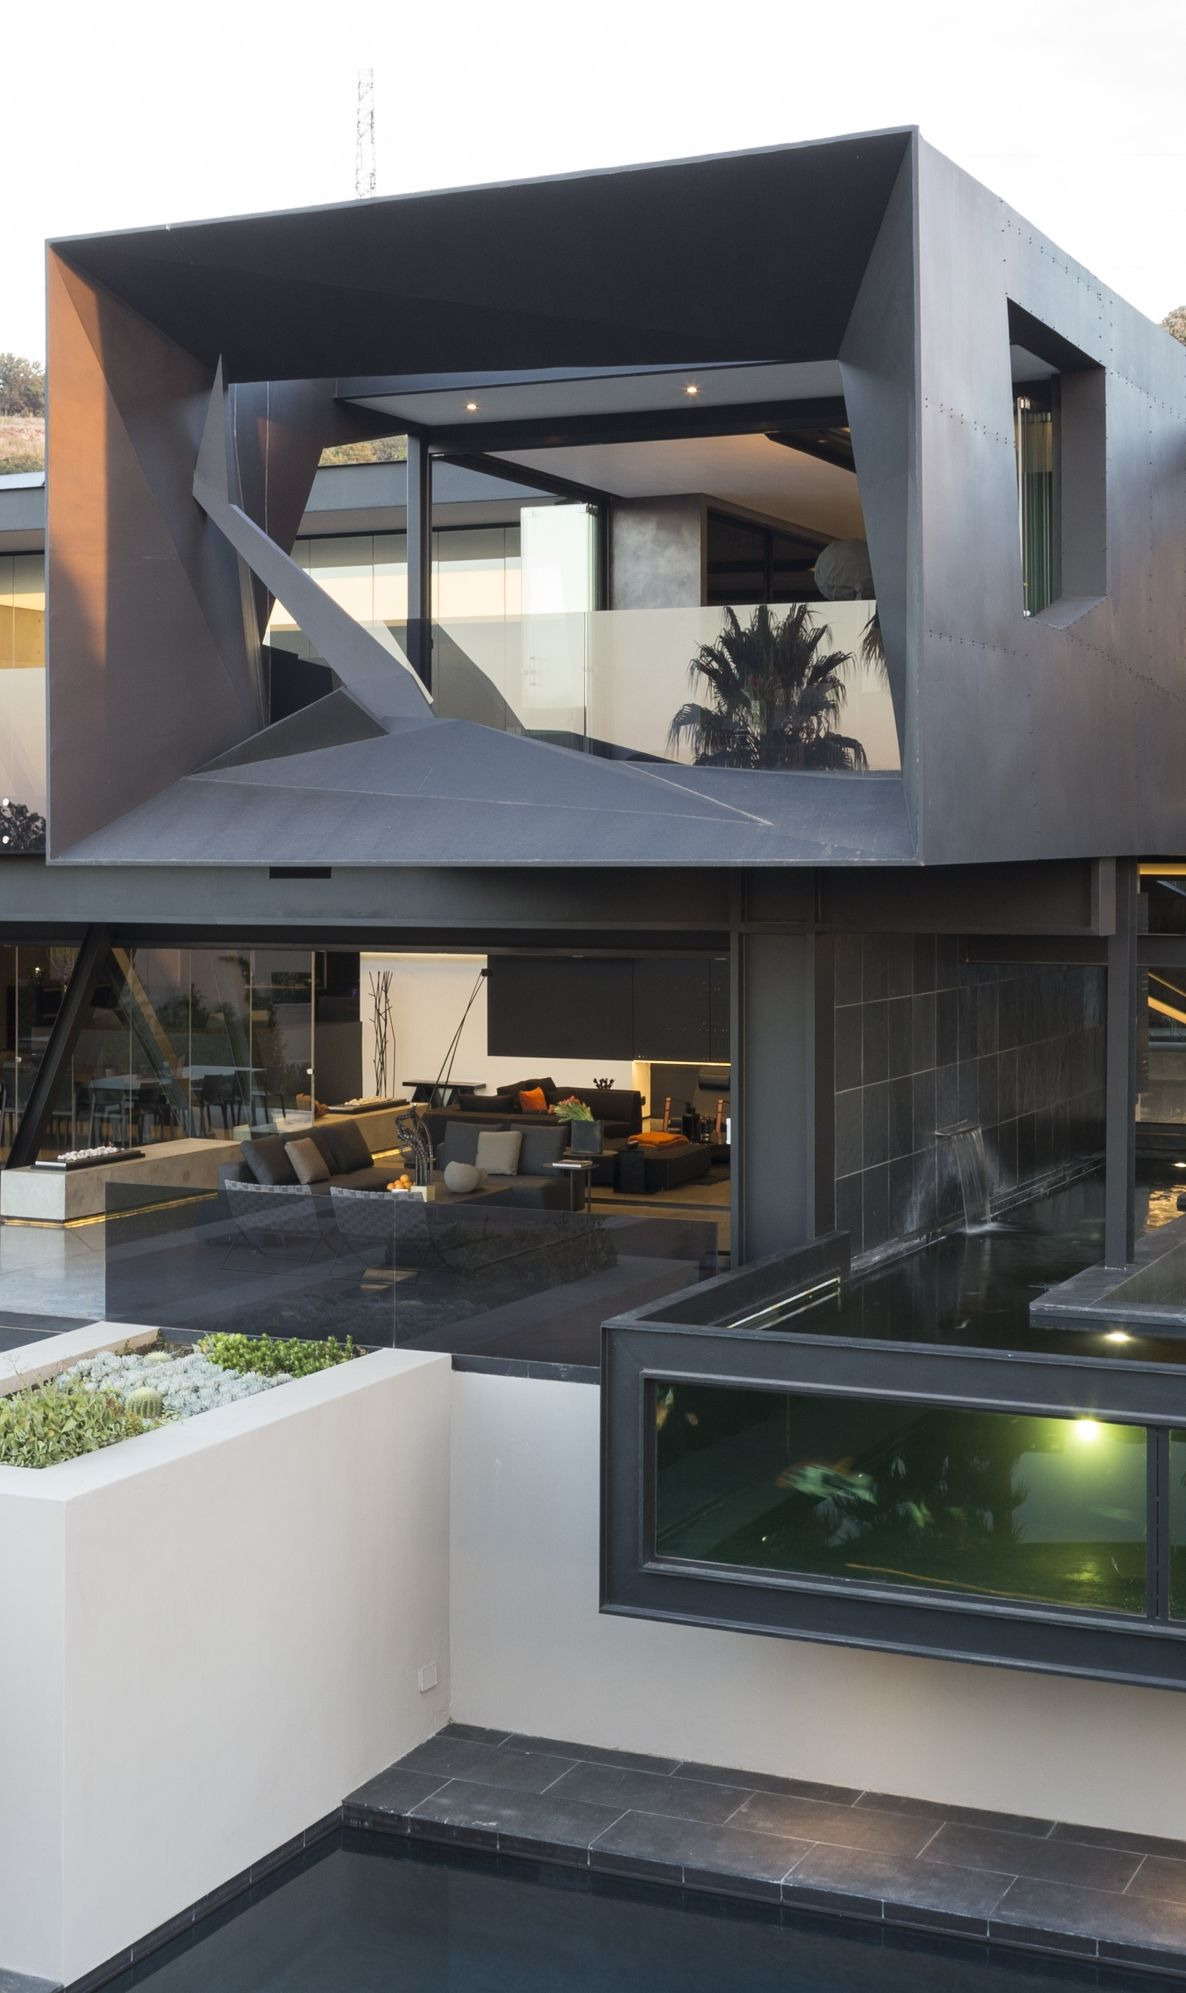 The Best House Design Inspirational Best Houses In the World Amazing Kloof Road House